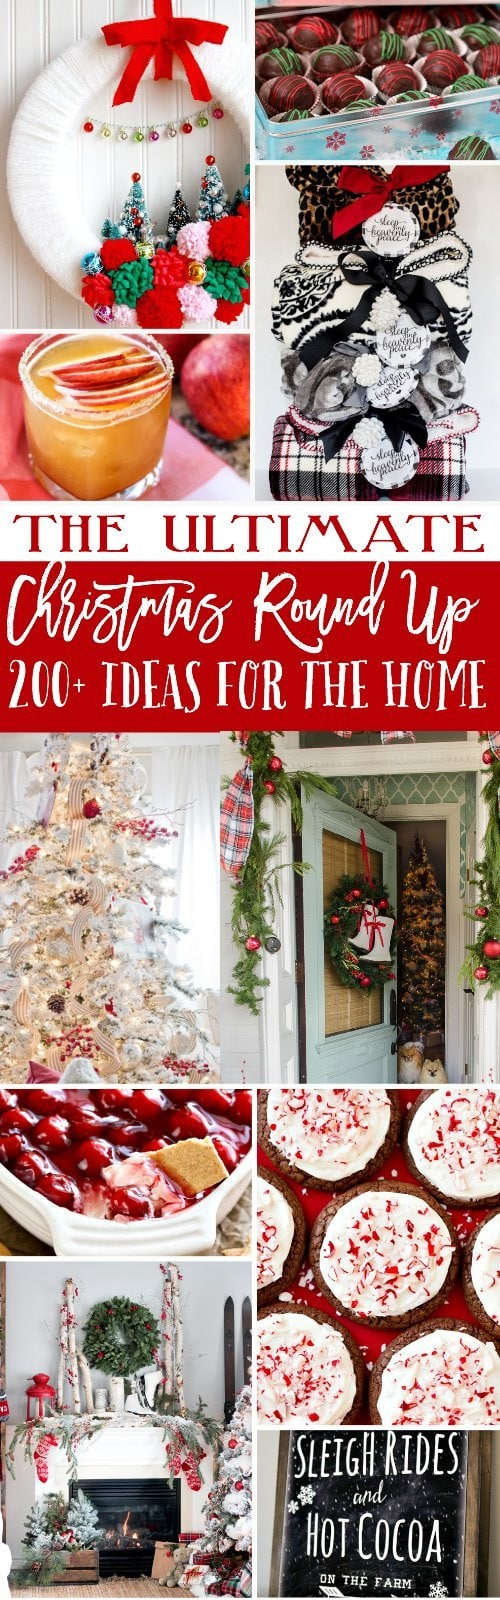 the-ultimate-christmas-round-up-with-200-ideas-for-the-home-gifts-and-things-to-bake